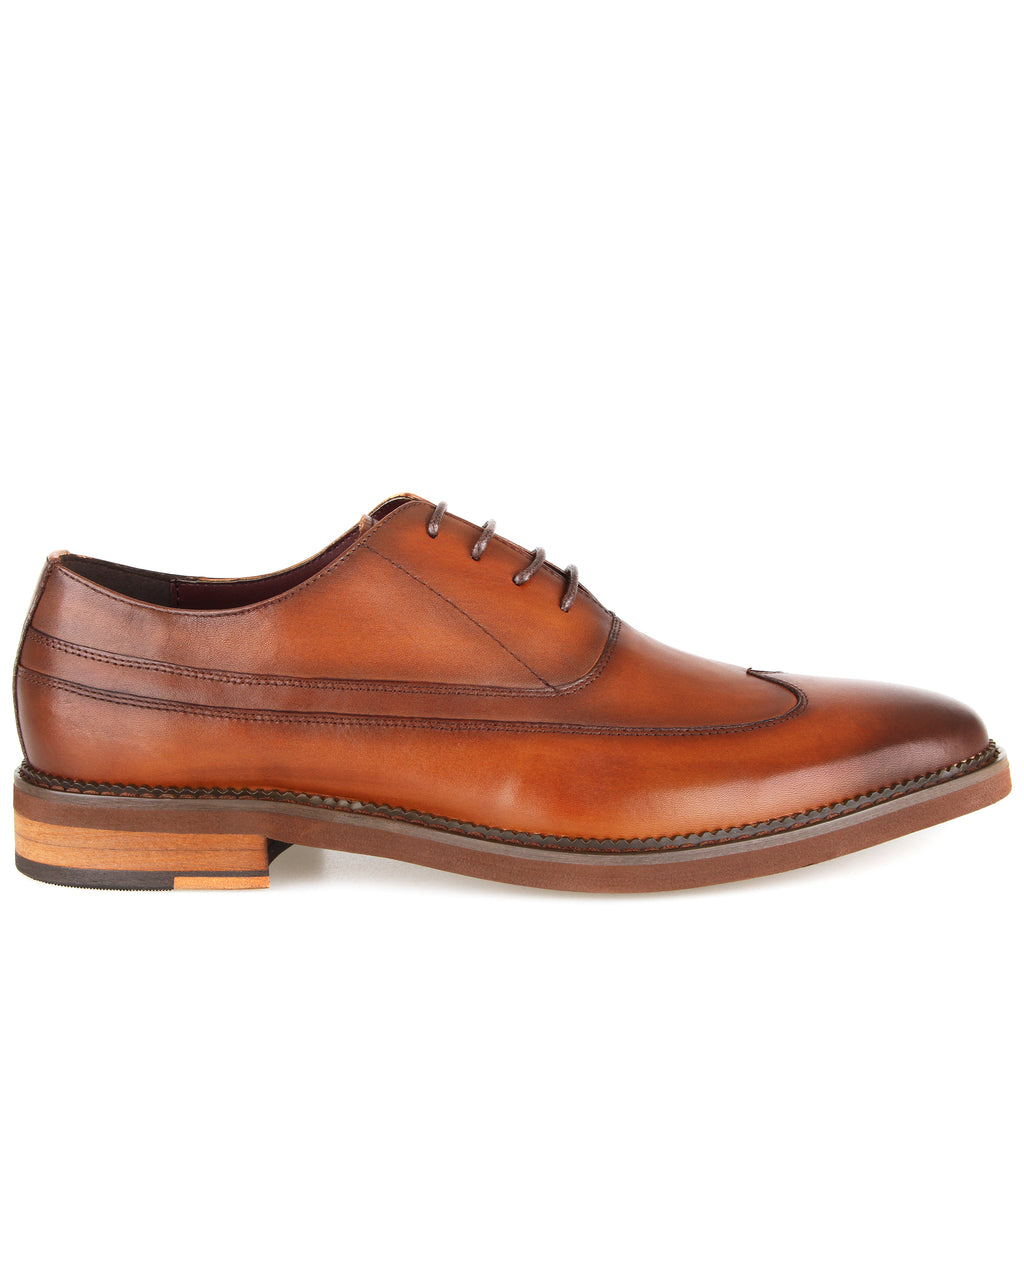 Tomaz F279 Formal Wingtip Oxford (Brown)